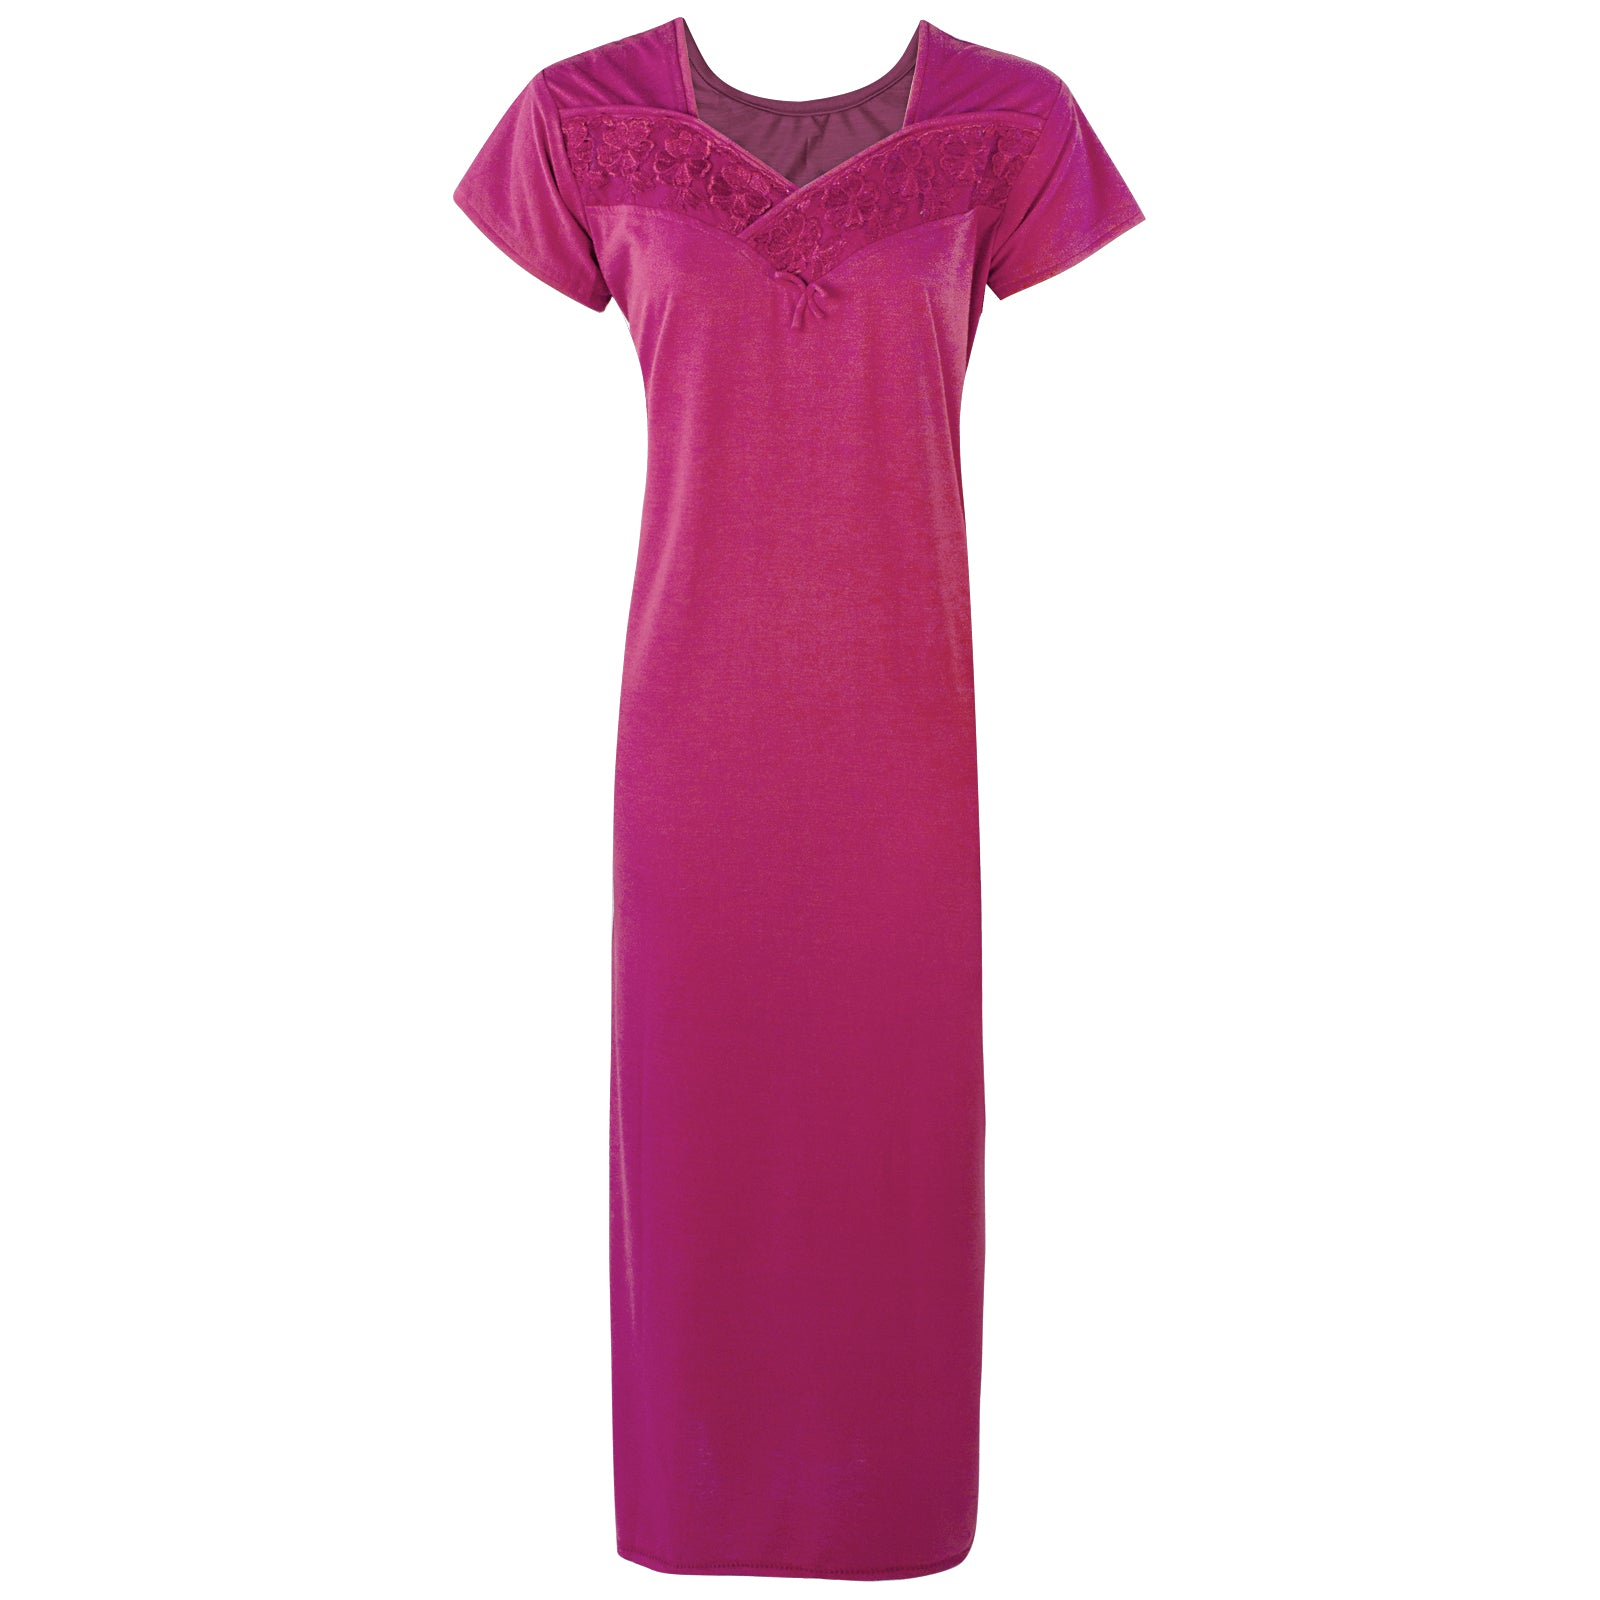 Colour: Wine Cotton Blend Comfy Jersey Nightdress Size: 12-16